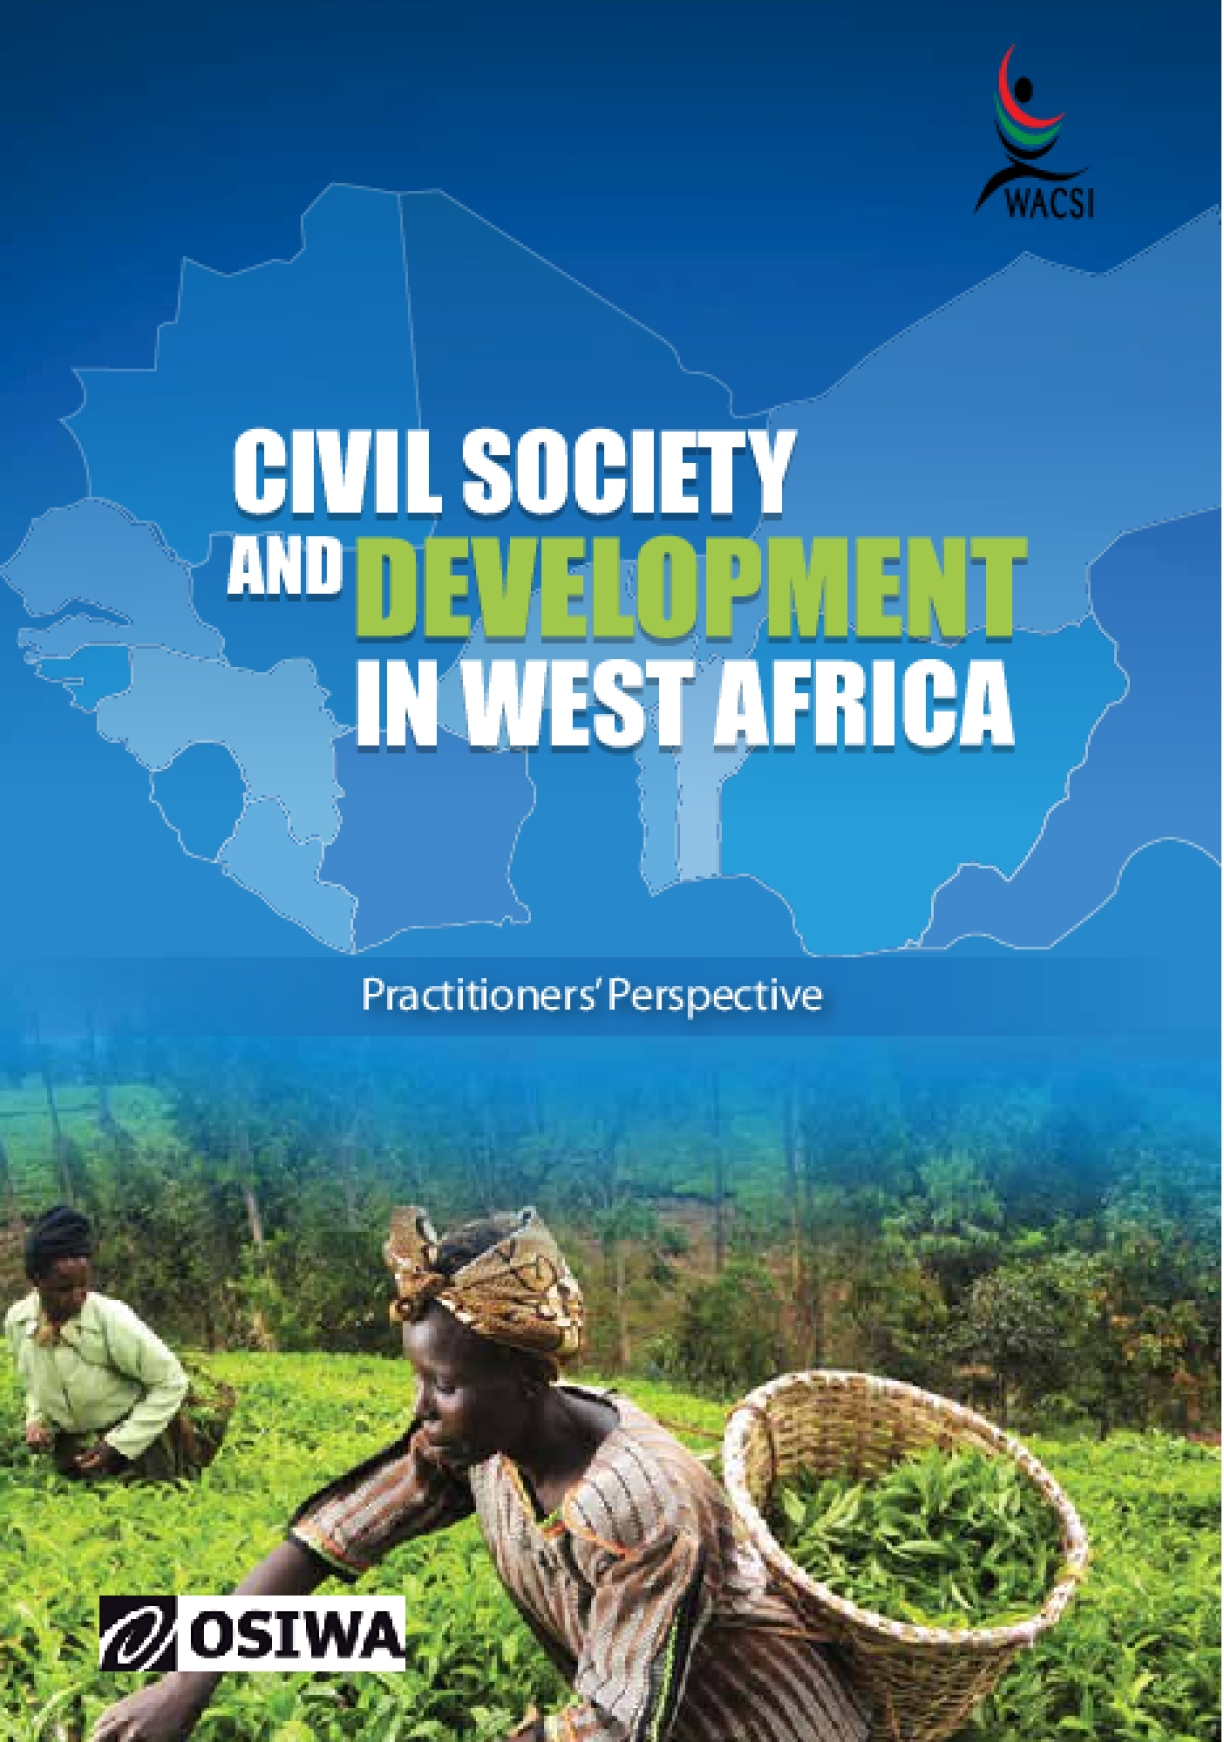 Civil Society and Development in West Africa: Practitioners' Perspective